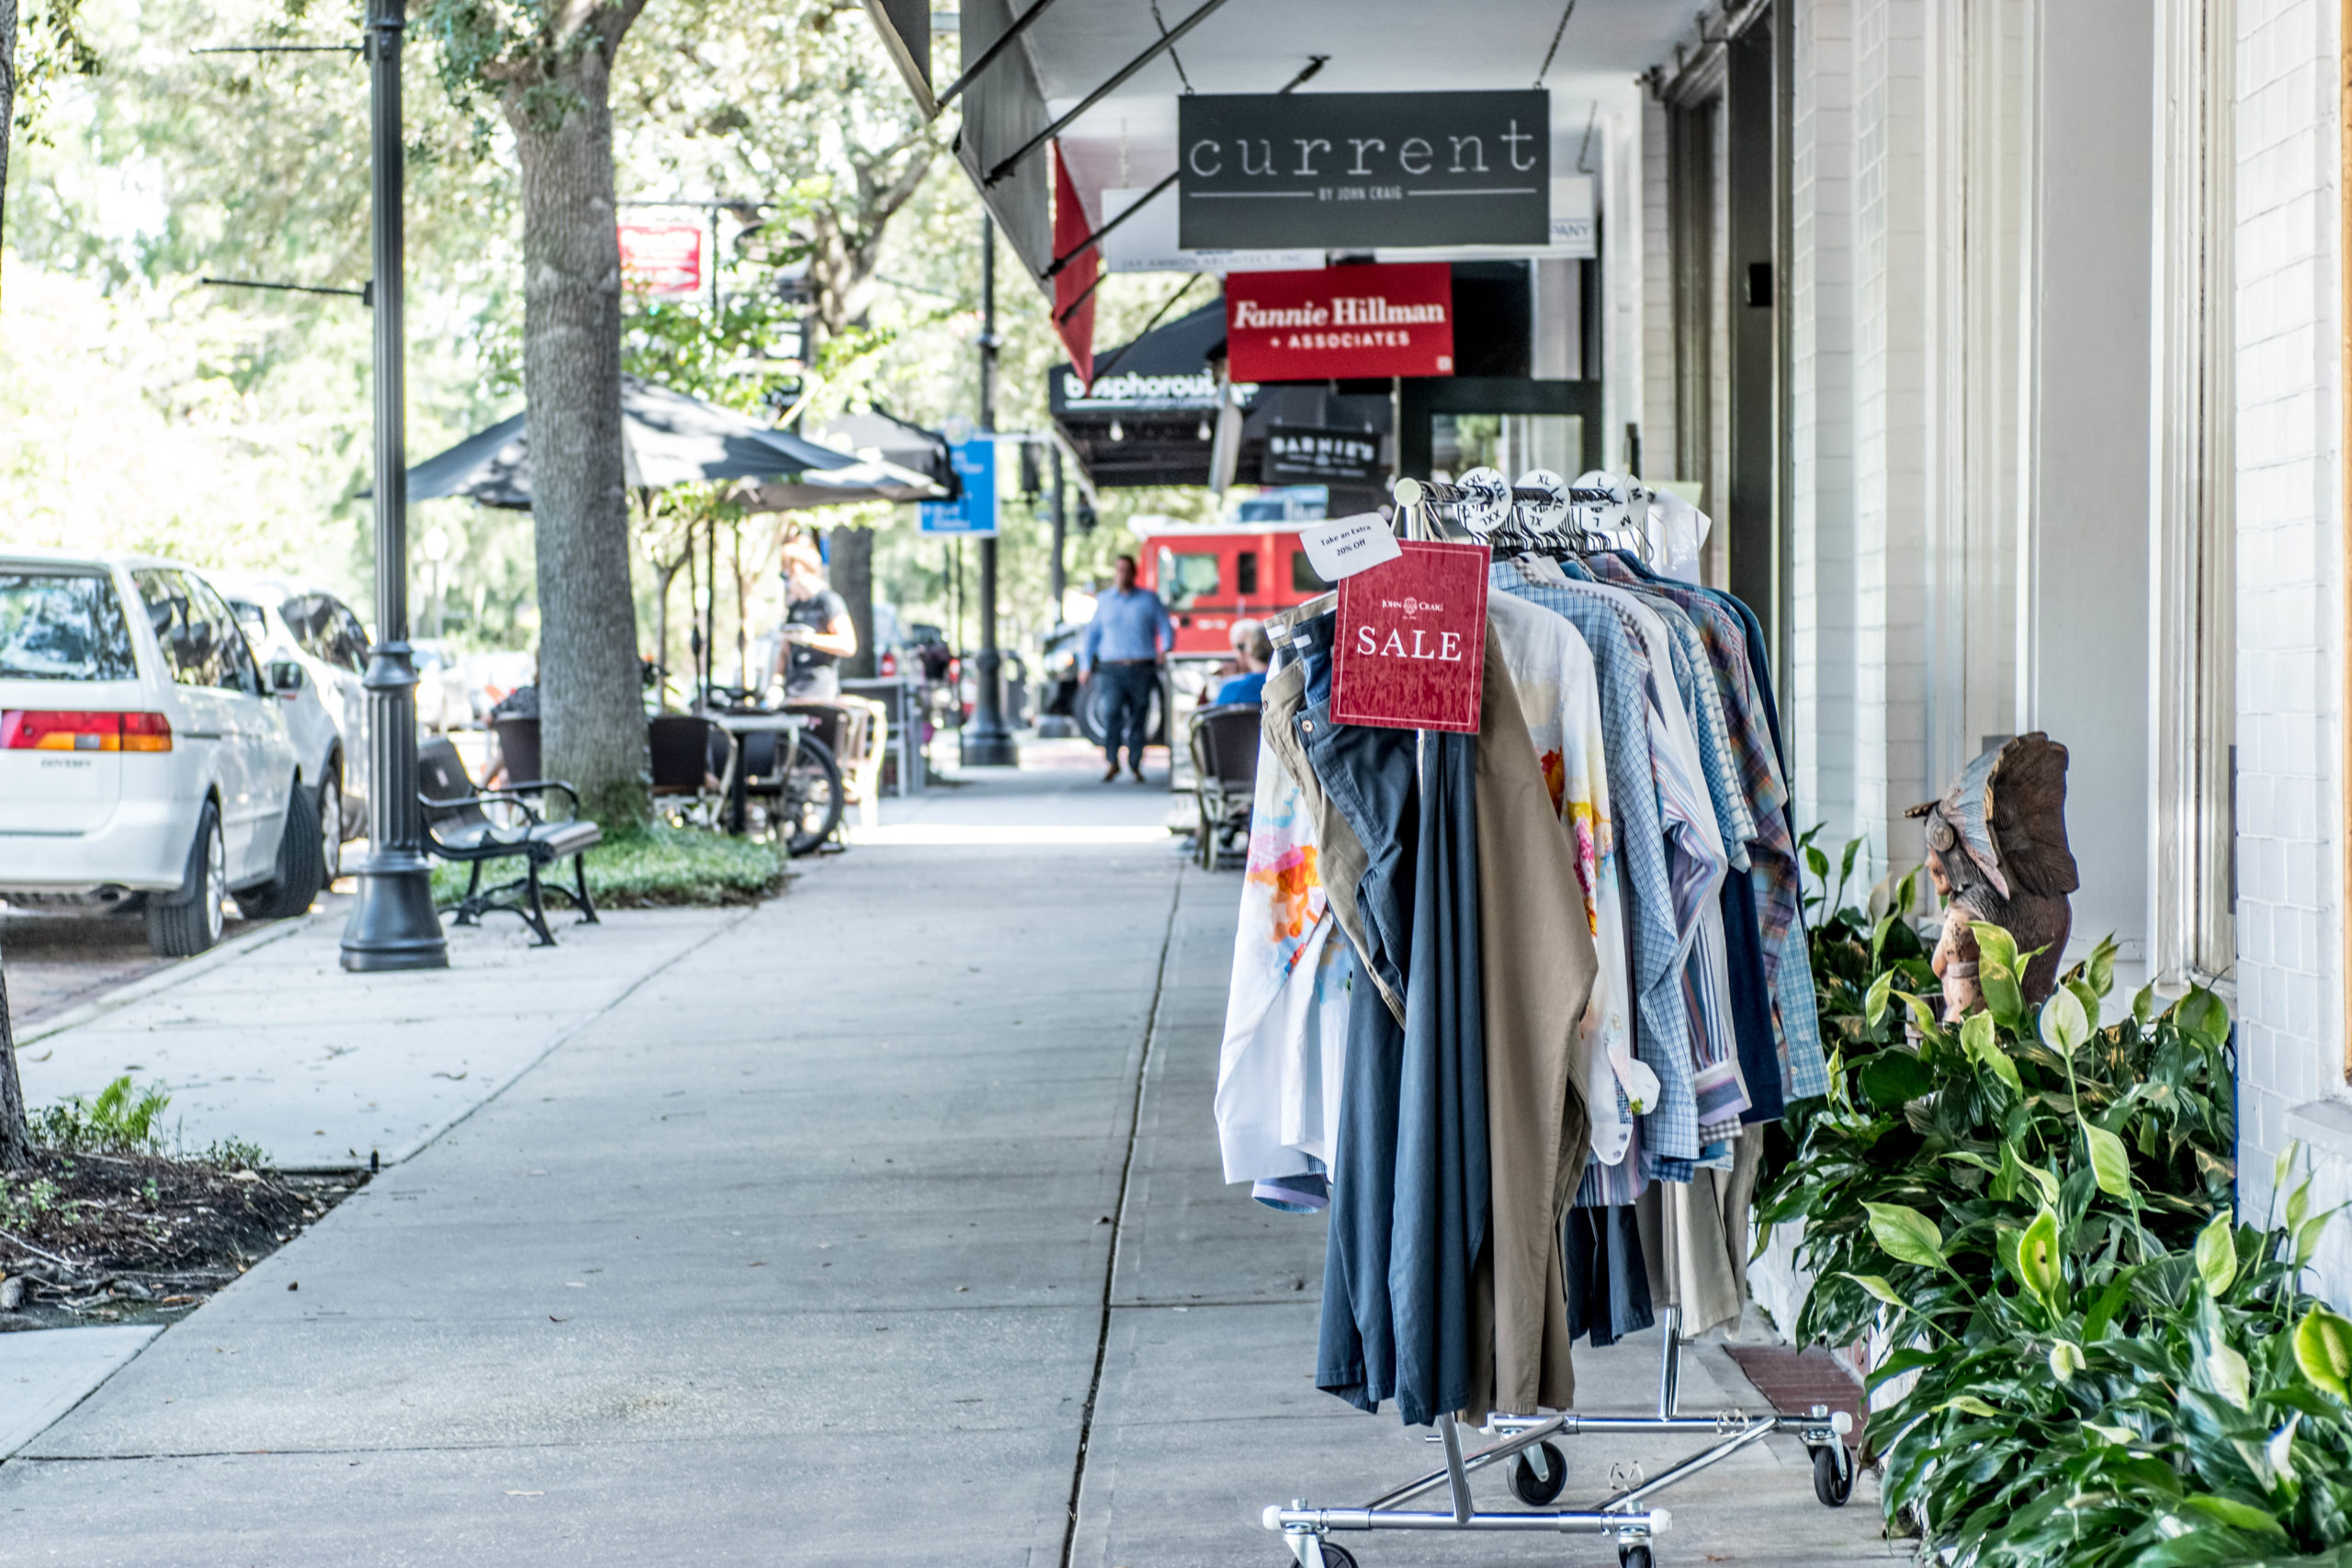 Sidewalk Sale on Park Avenue in Winter Park, Fla.